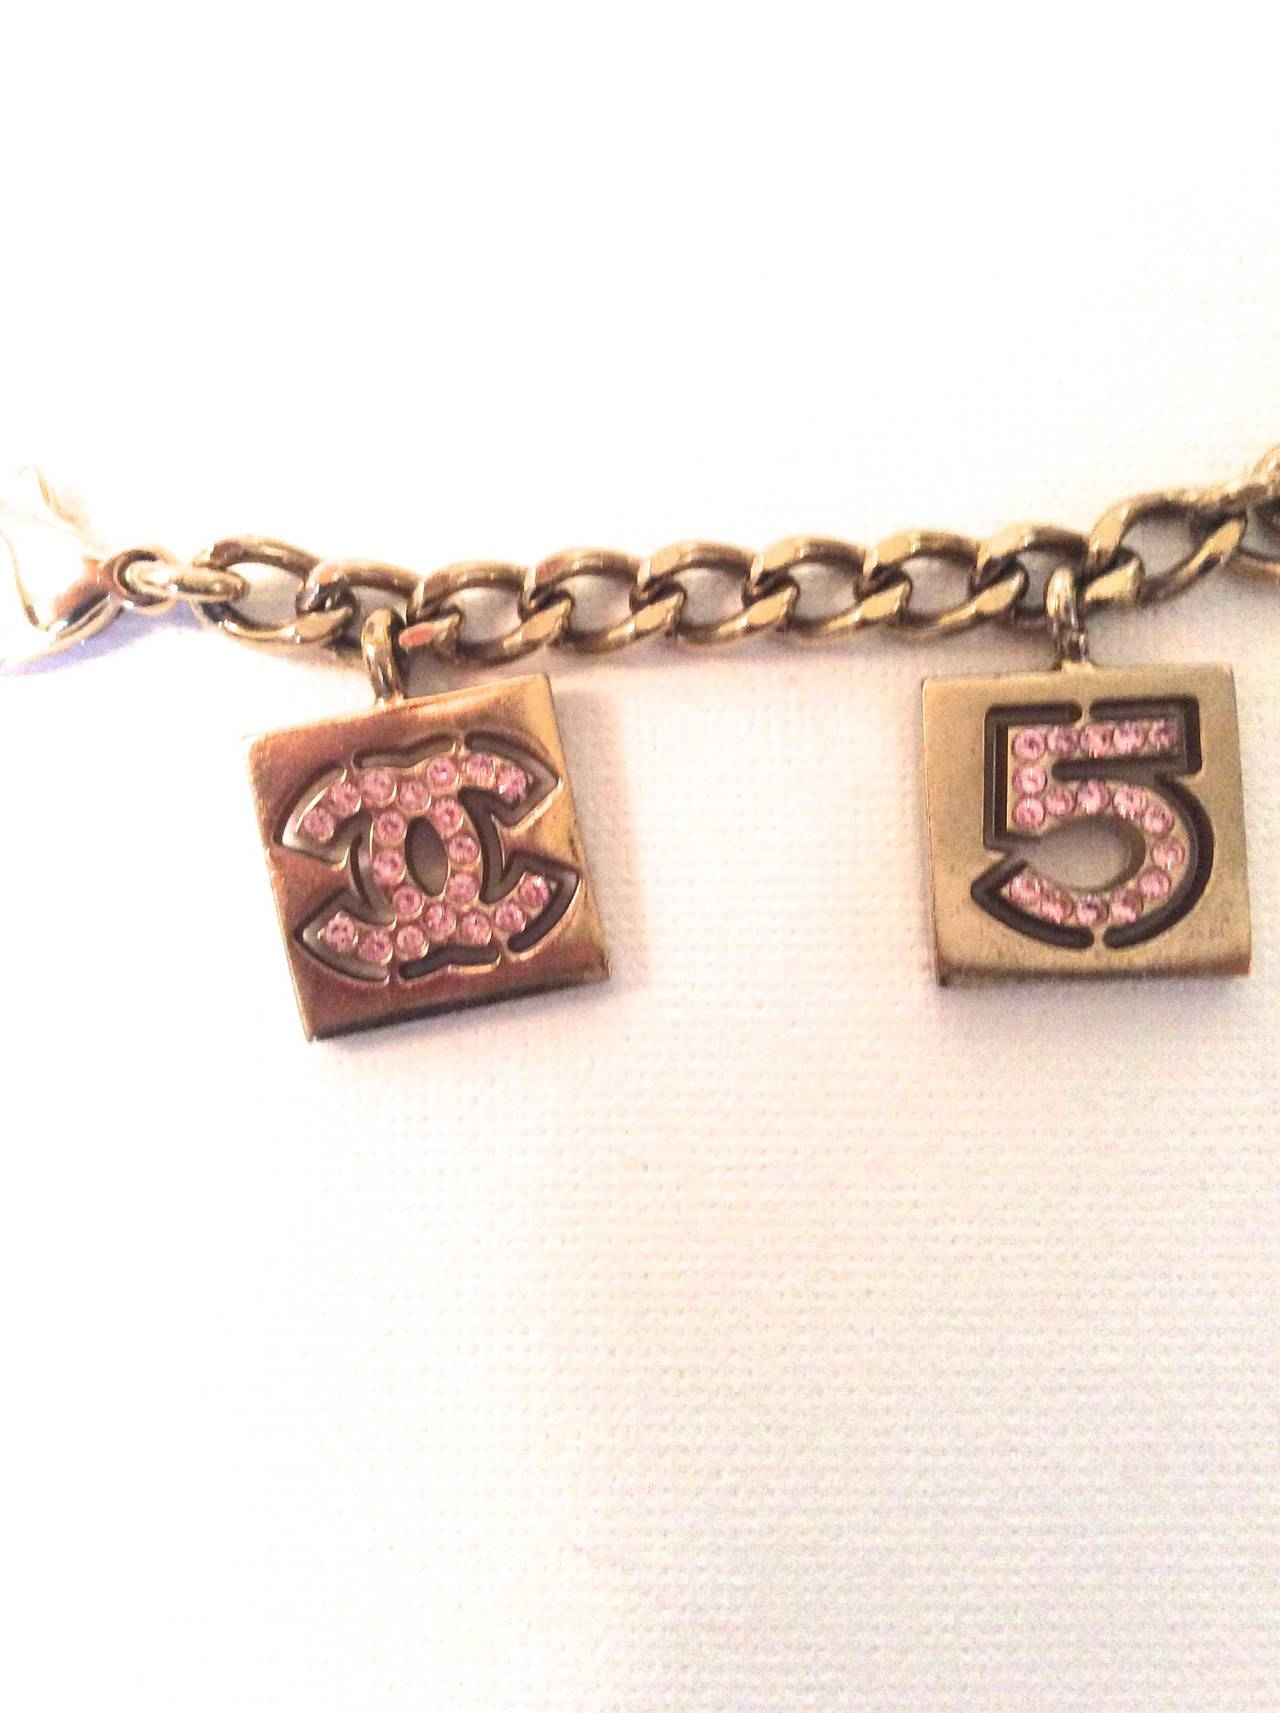 Vintage Chanel Gold Tone with Pink Rhinestone Charm Bracelet For Sale 2